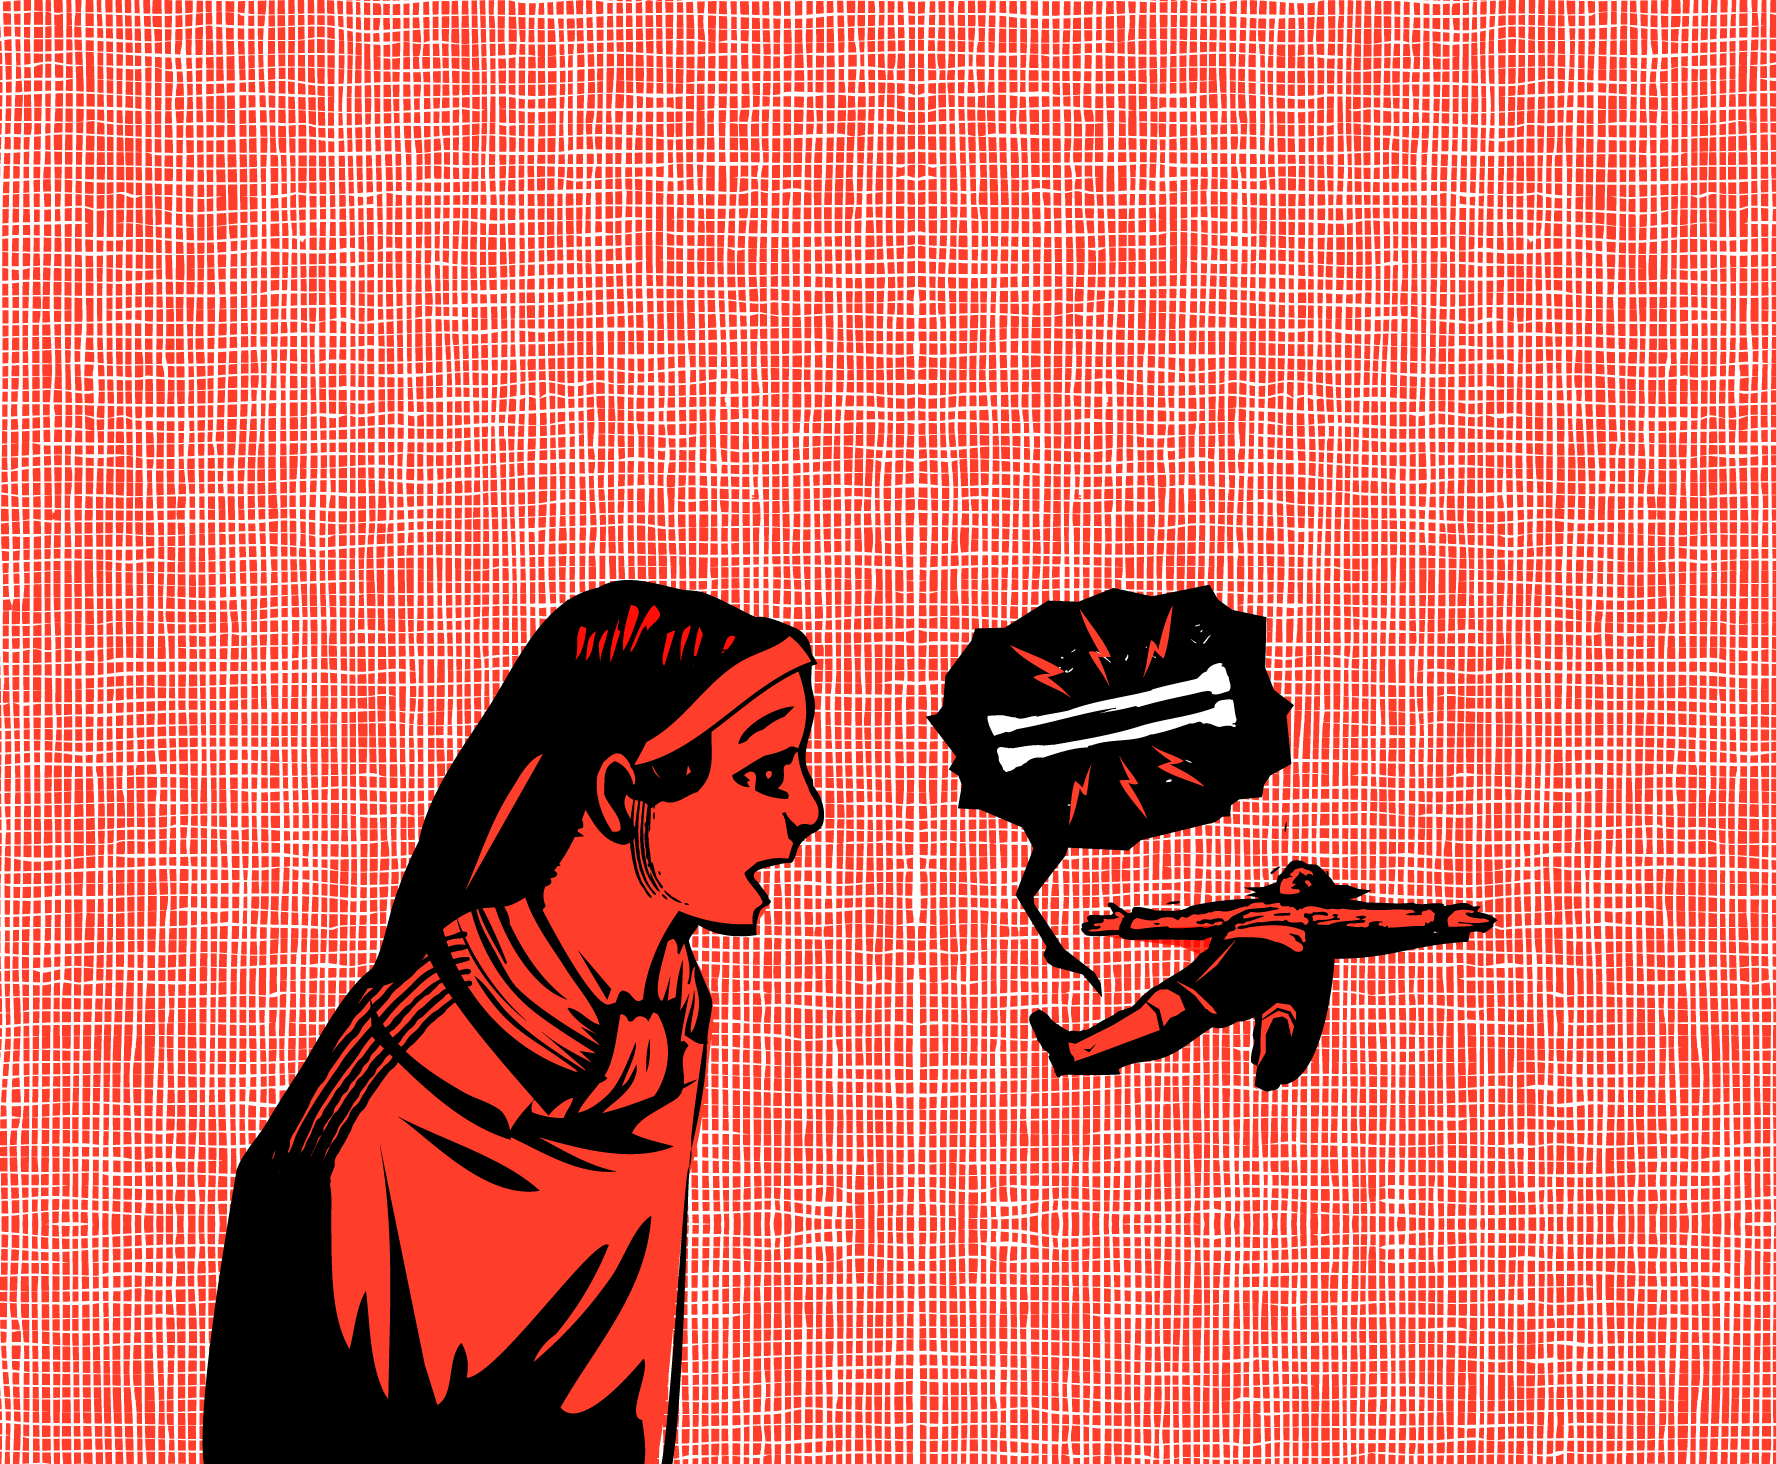 Illustration of a nun near a child on the ground, with a speech bubble with bones inside it.